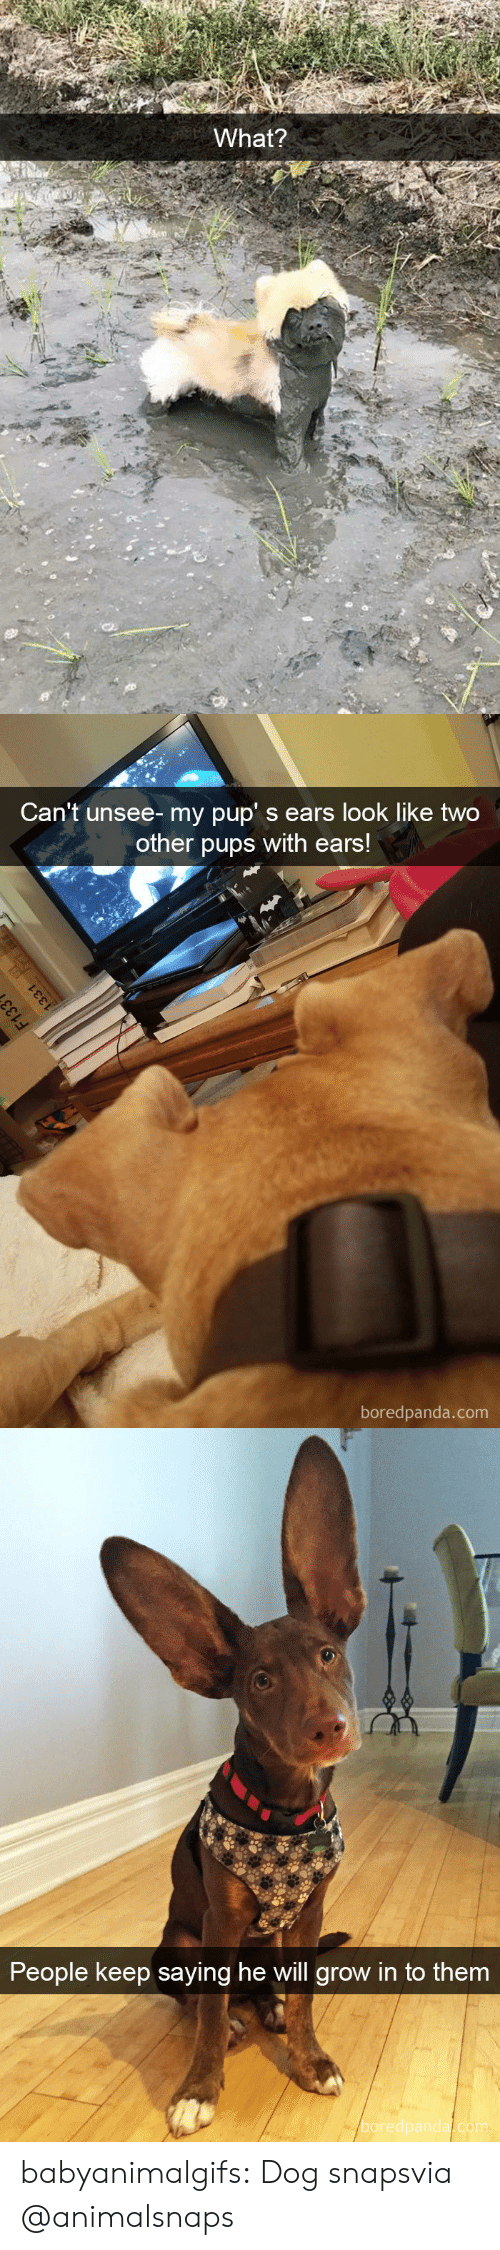 Tumblr, Blog, and Http: What?   Can't unsee- my pup' s ears look like two  other pups with ears!  boredpanda.com   People keep saying he will grow in  to them  boredpanda.com babyanimalgifs:  Dog snapsvia @animalsnaps